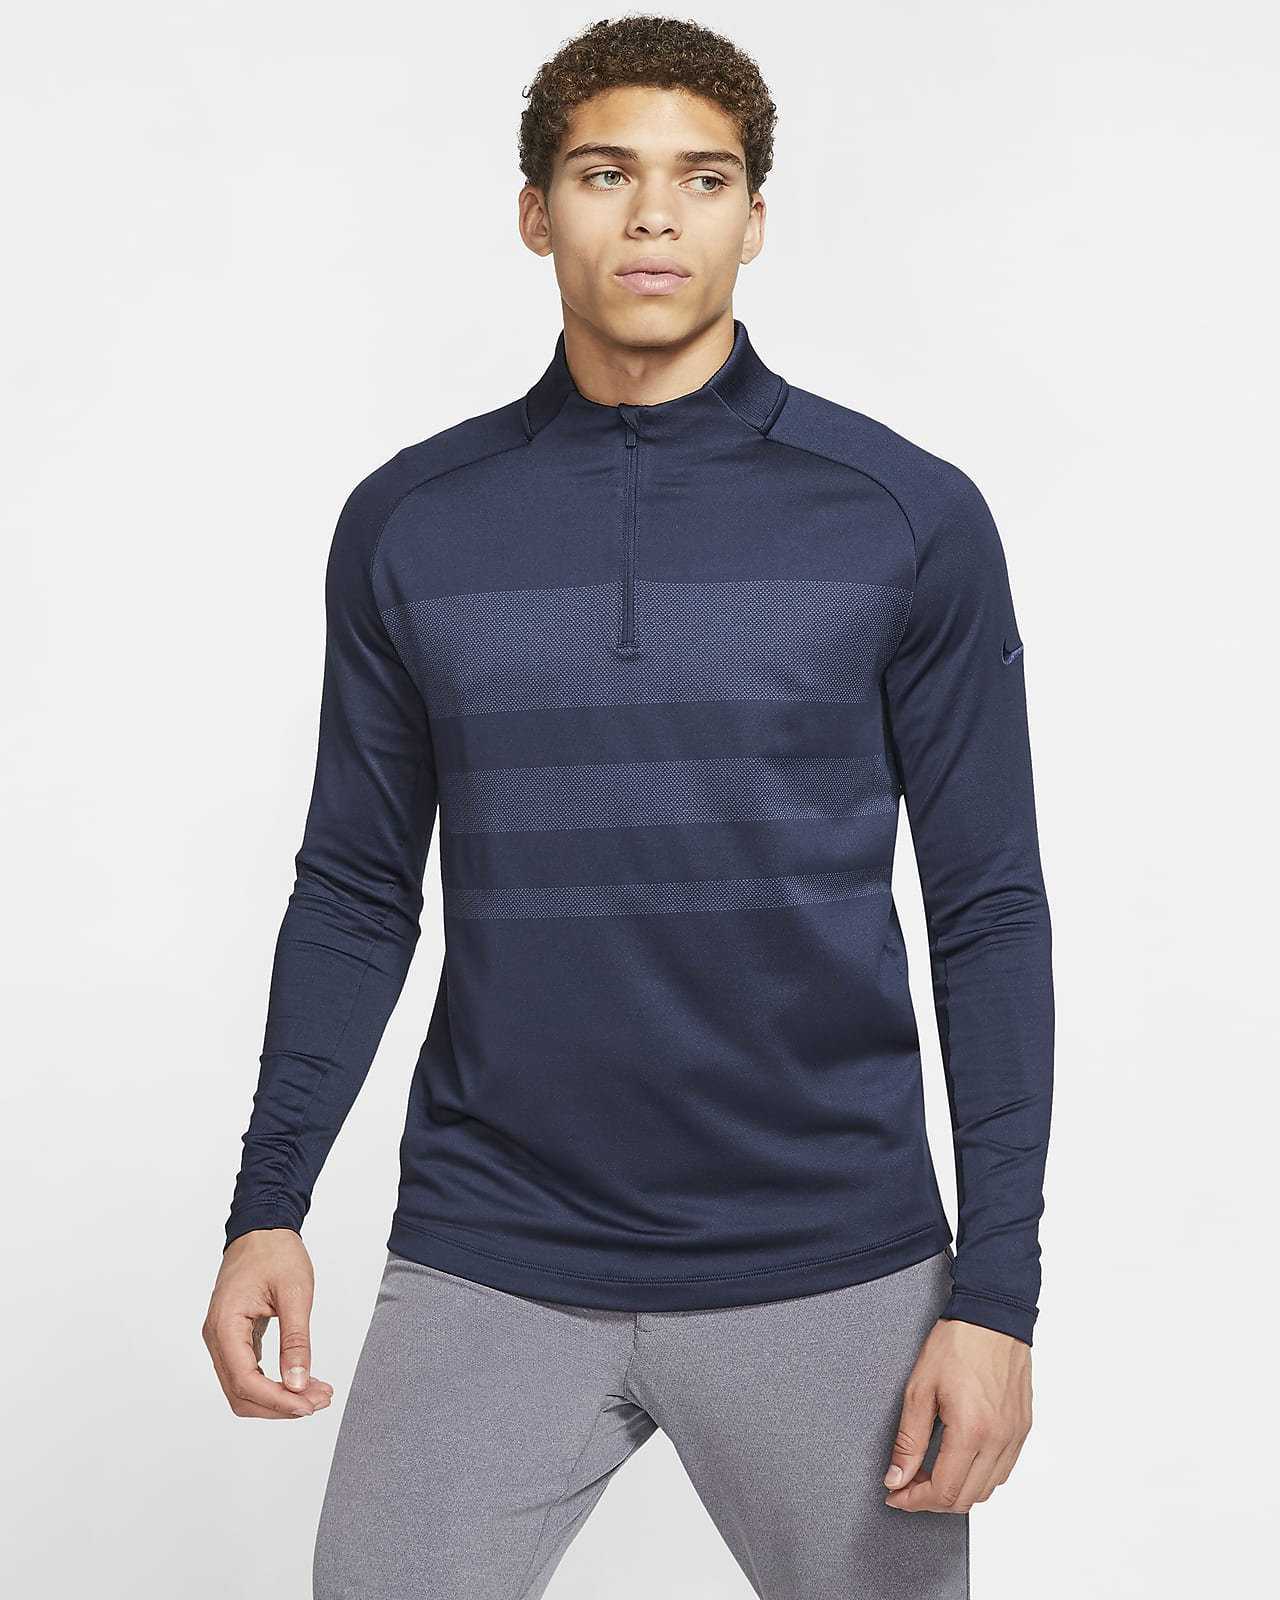 Nike Dri-FIT Vapor Men's 1/2-Zip Golf Top